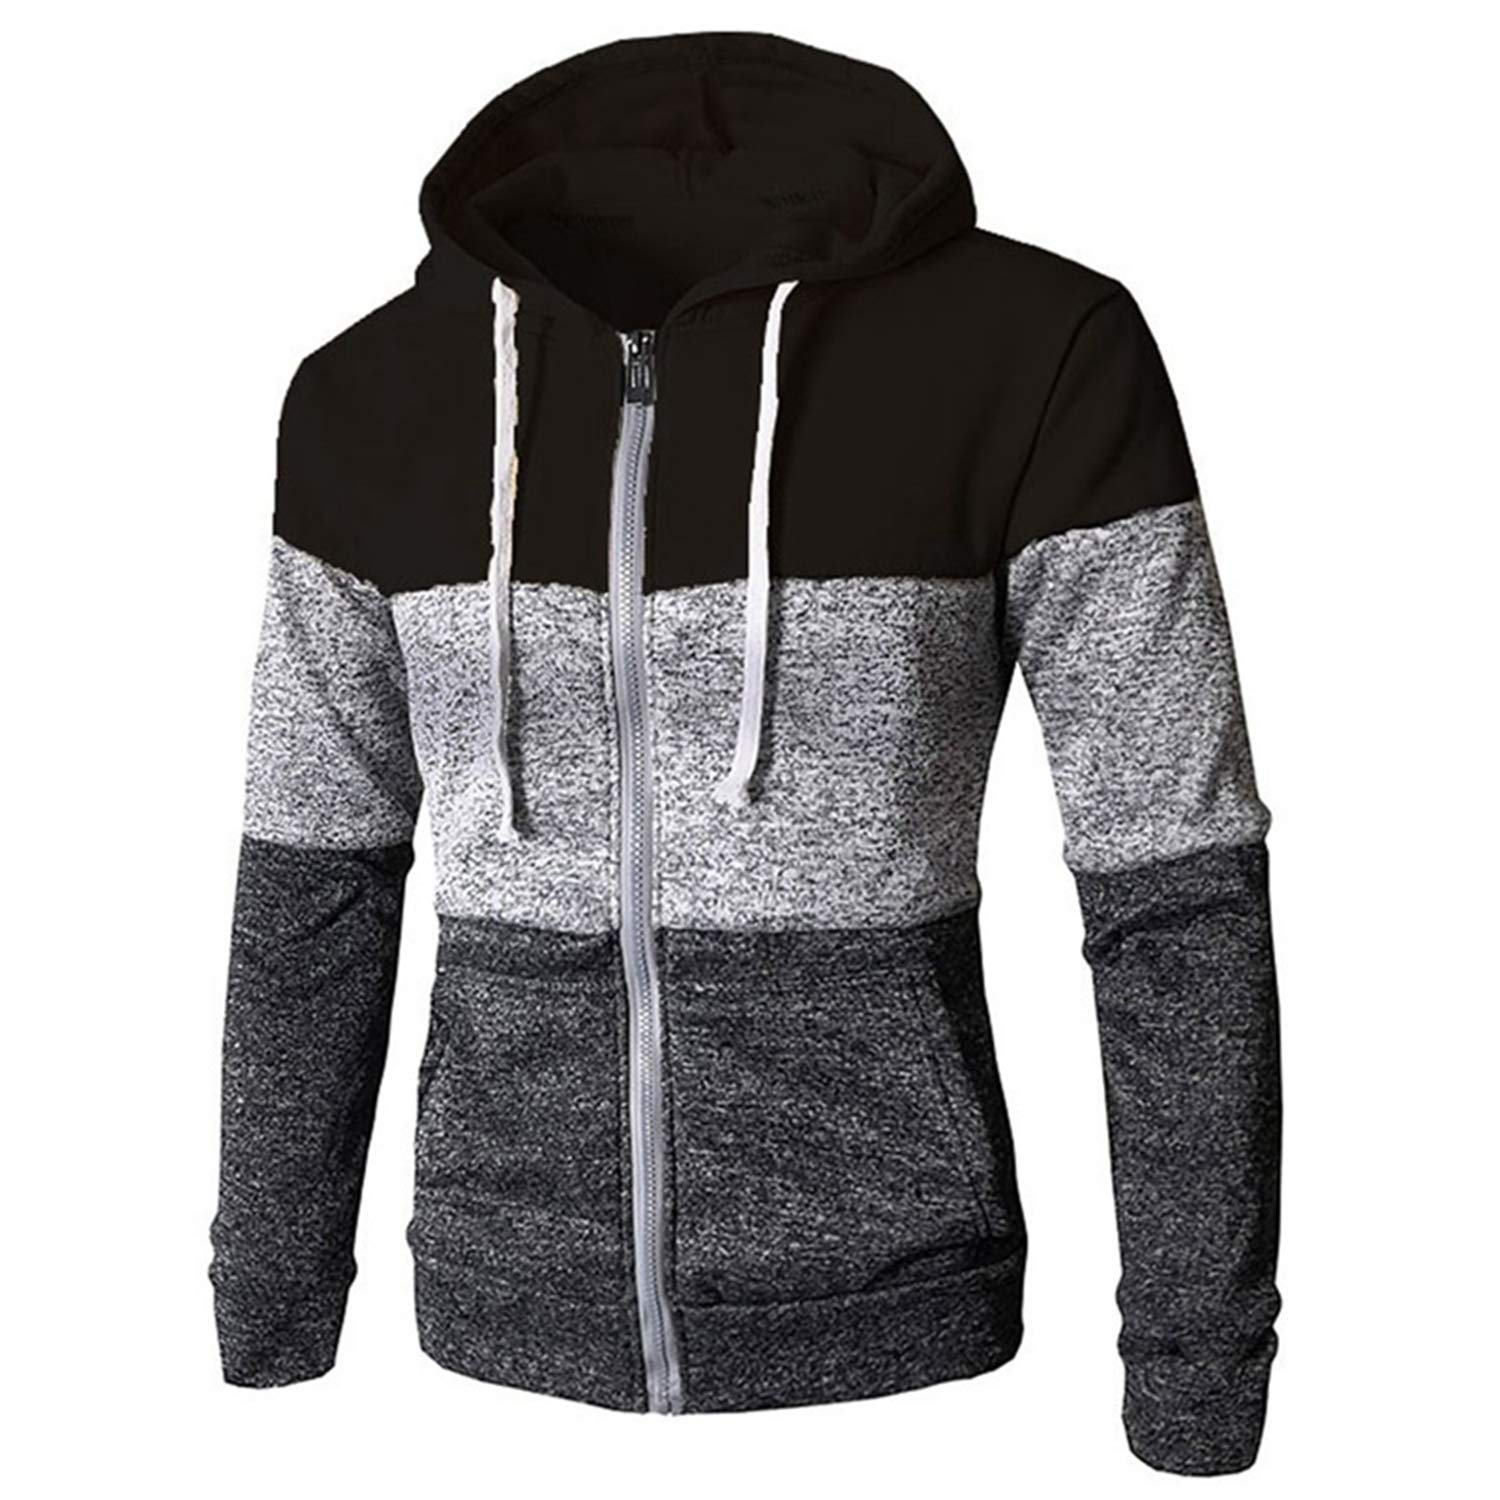 Fashion Hoodies Stitching Sweater Men Hooded Winter Solid Thicken Ouear Sweater Coat Casual Cardigans